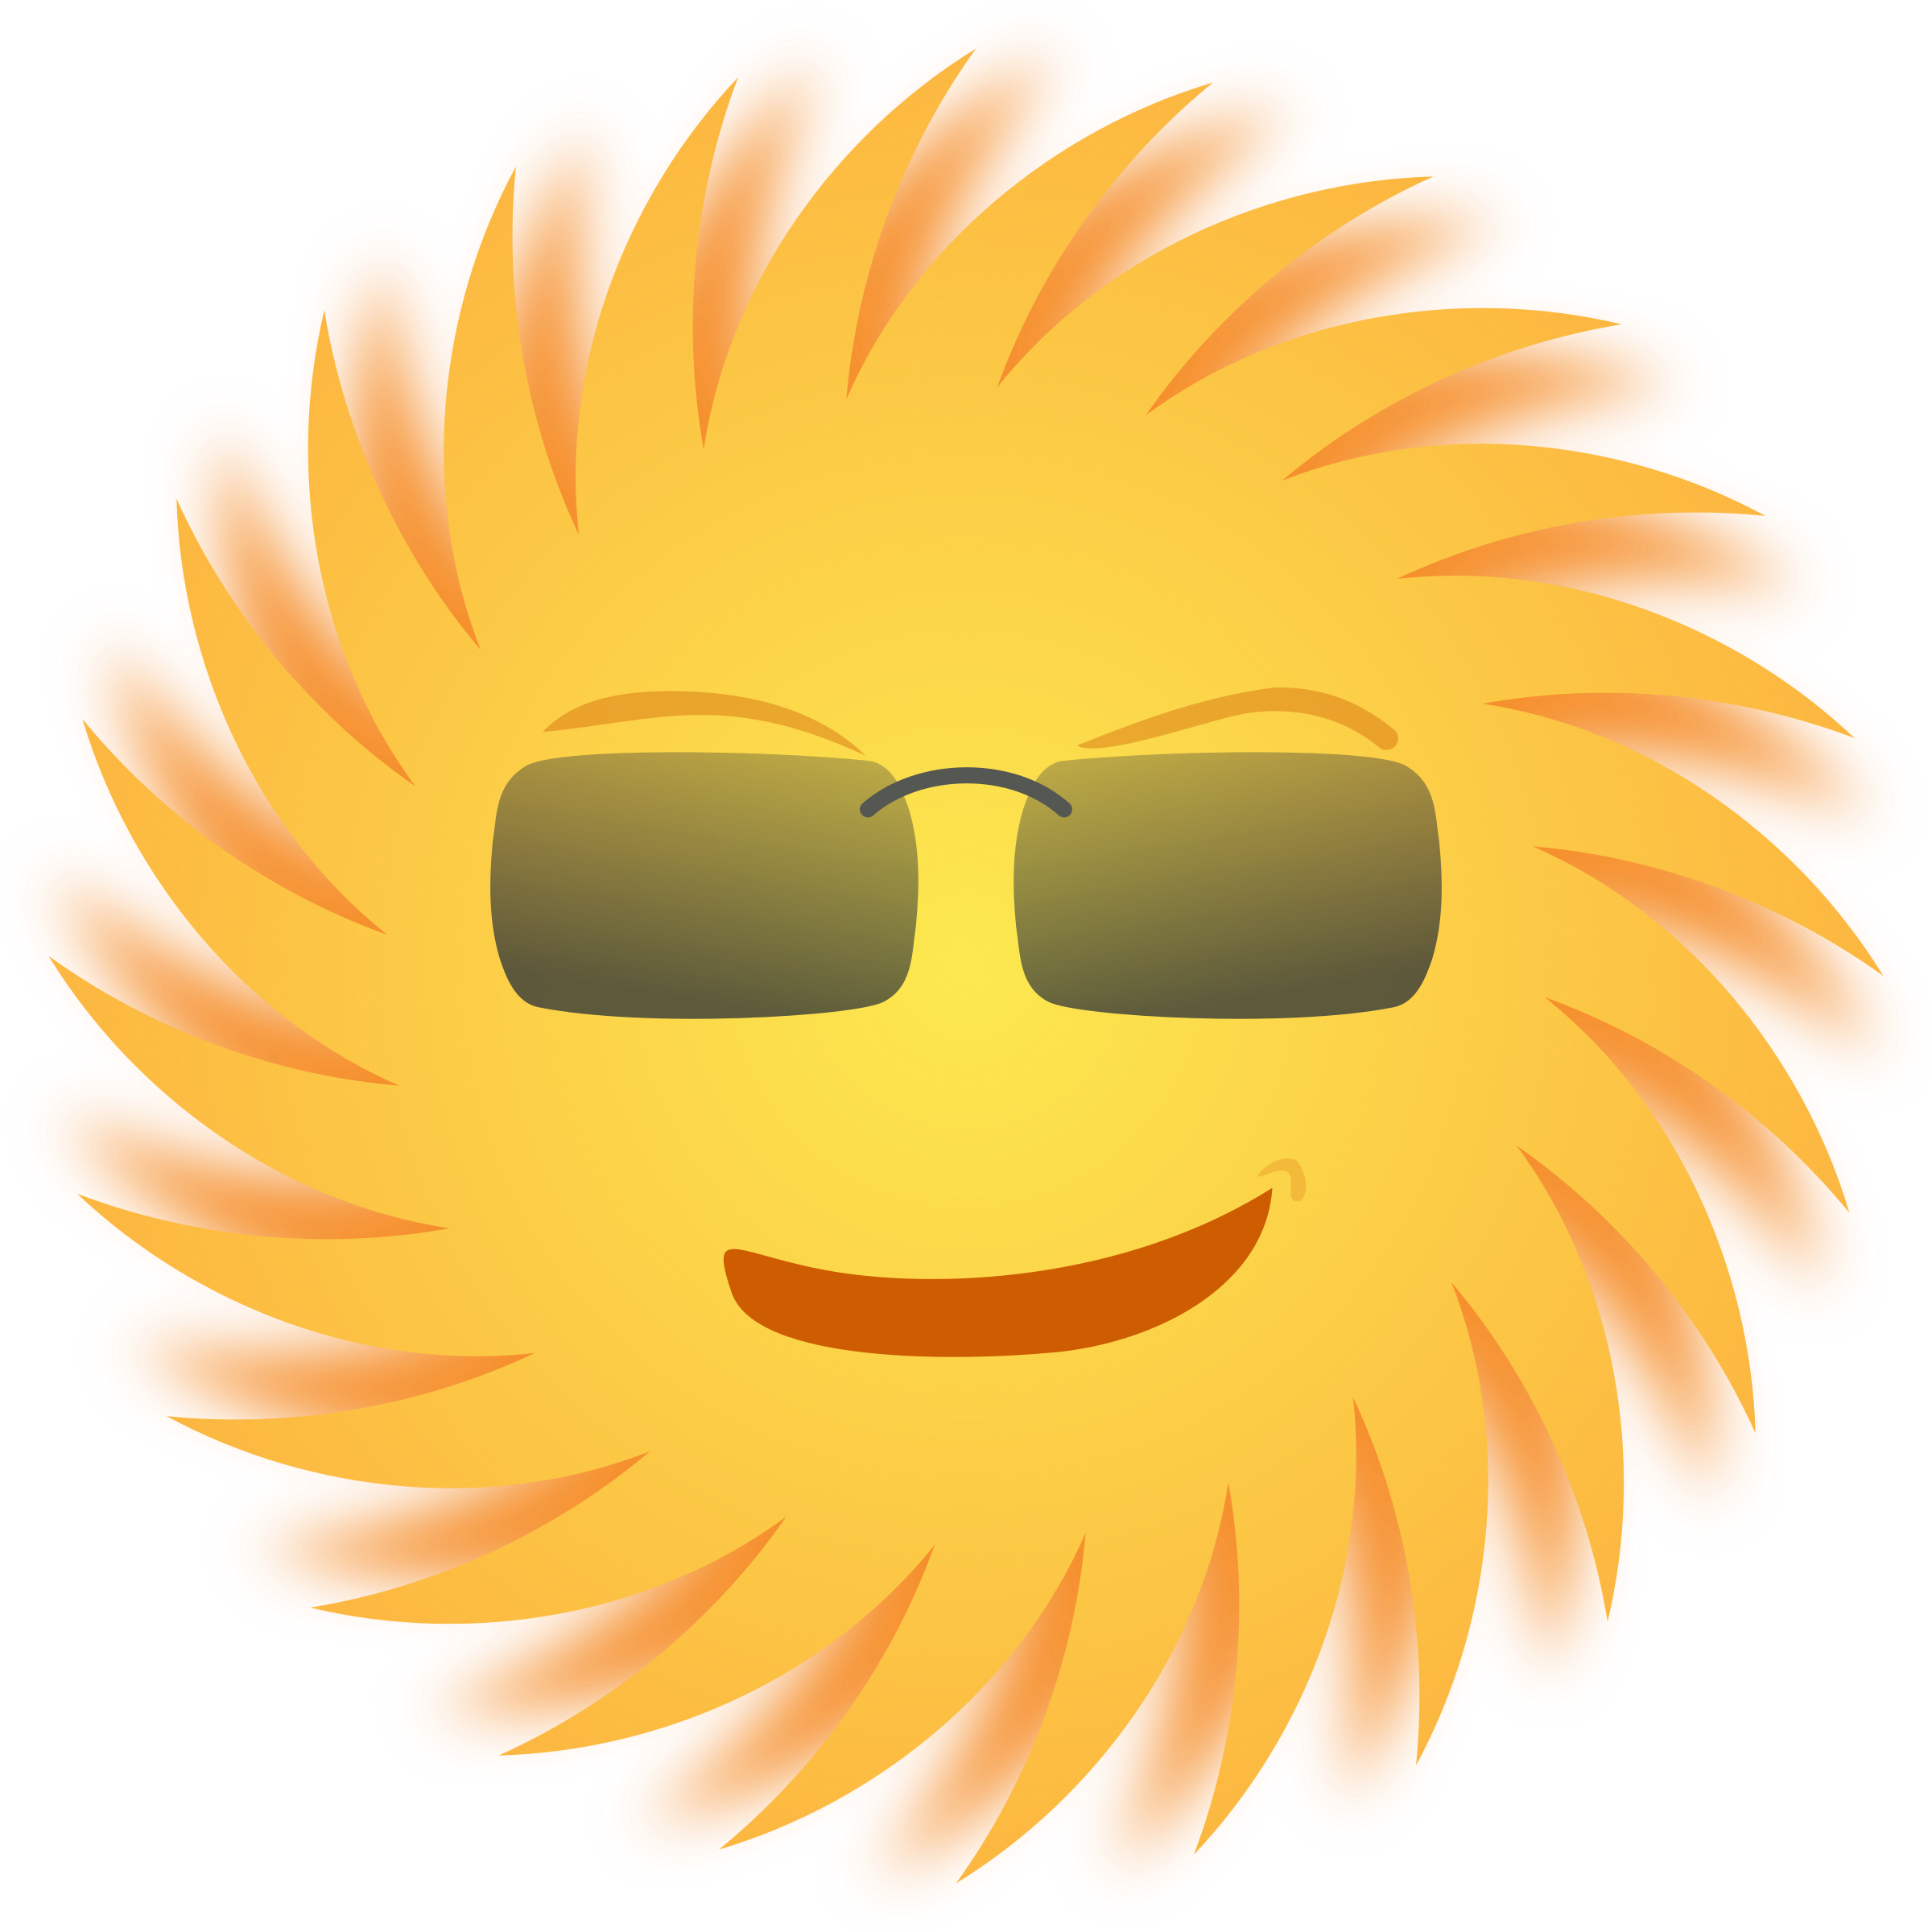 Moving clipart mouth. Mr sun big image